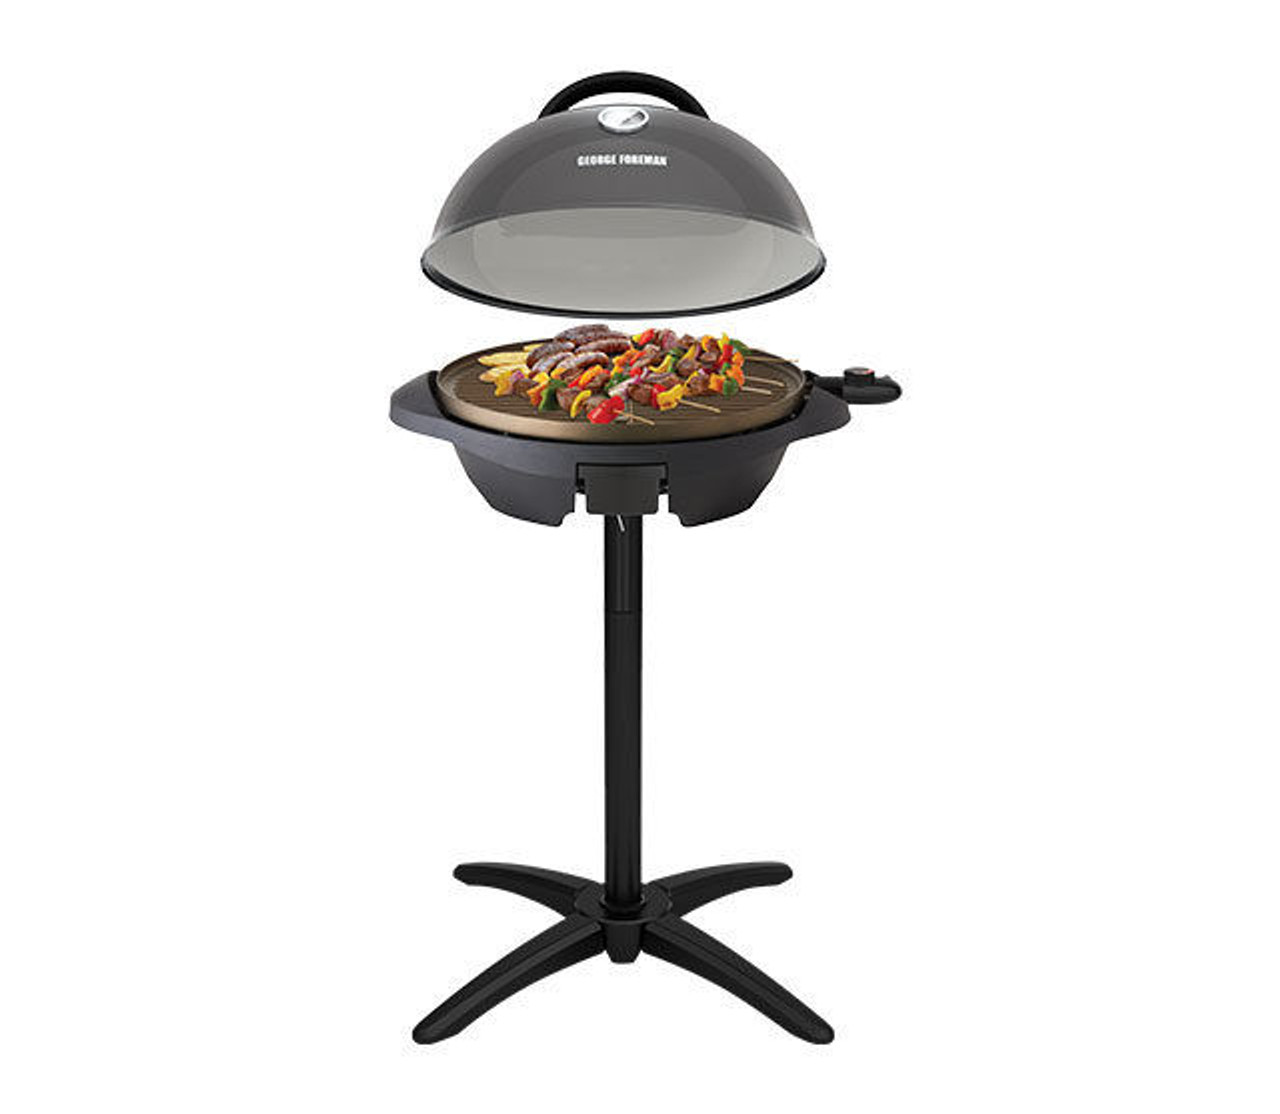 George Foreman GGR300AU Easy to Clean Indoor/Outdoor BBQ - RRP $174.90